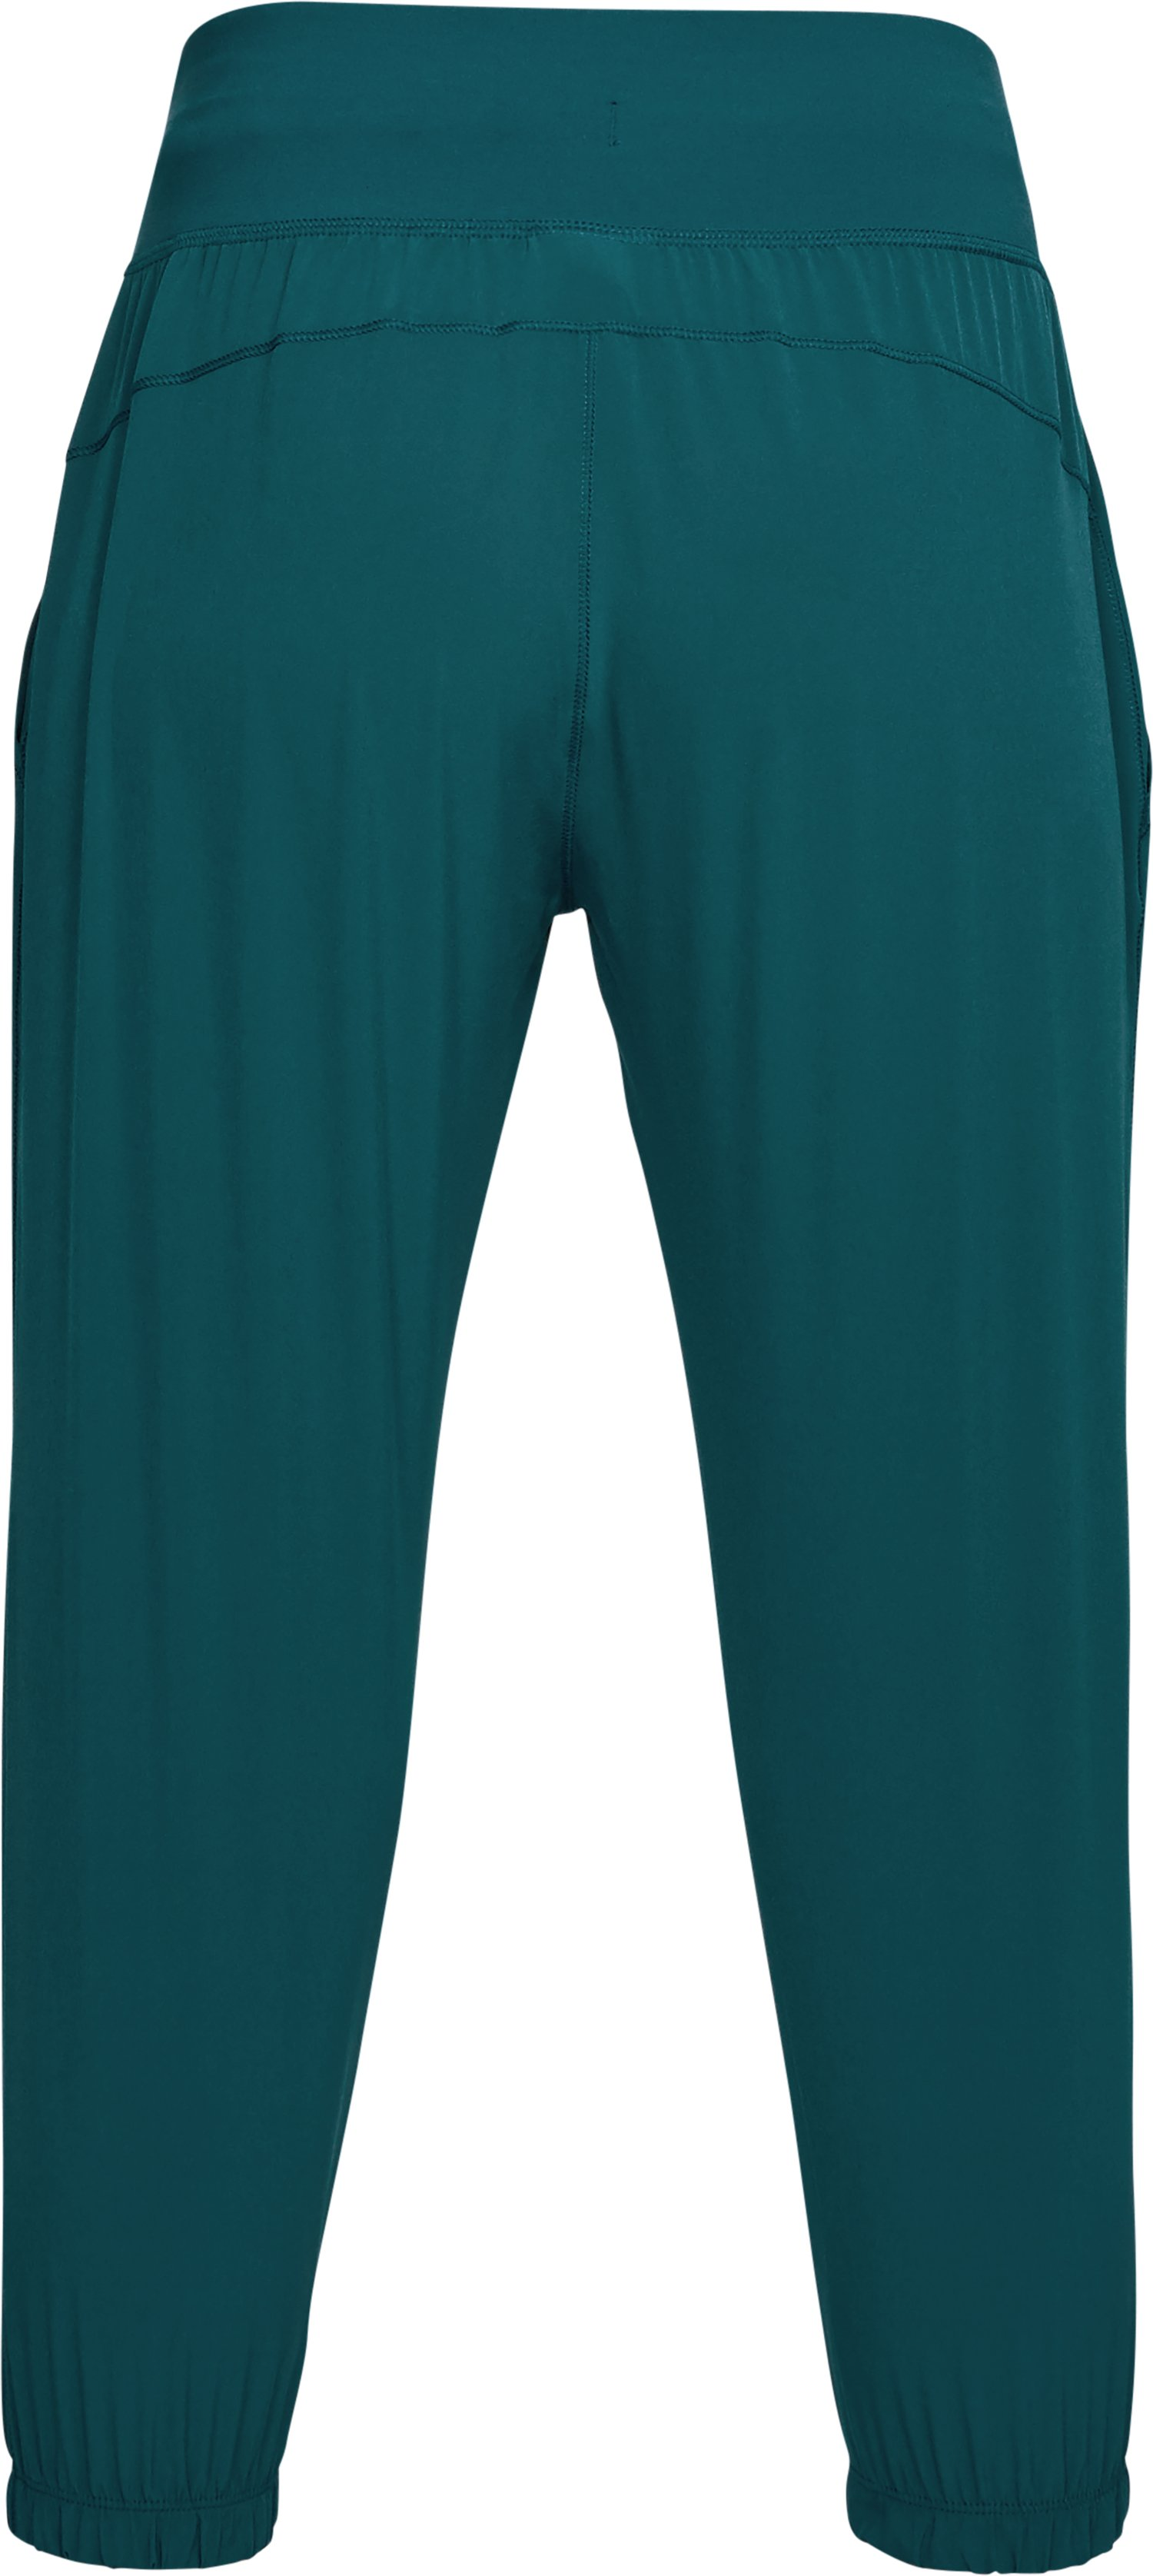 Women's Under Armour Sunblock Crop, TOURMALINE TEAL,